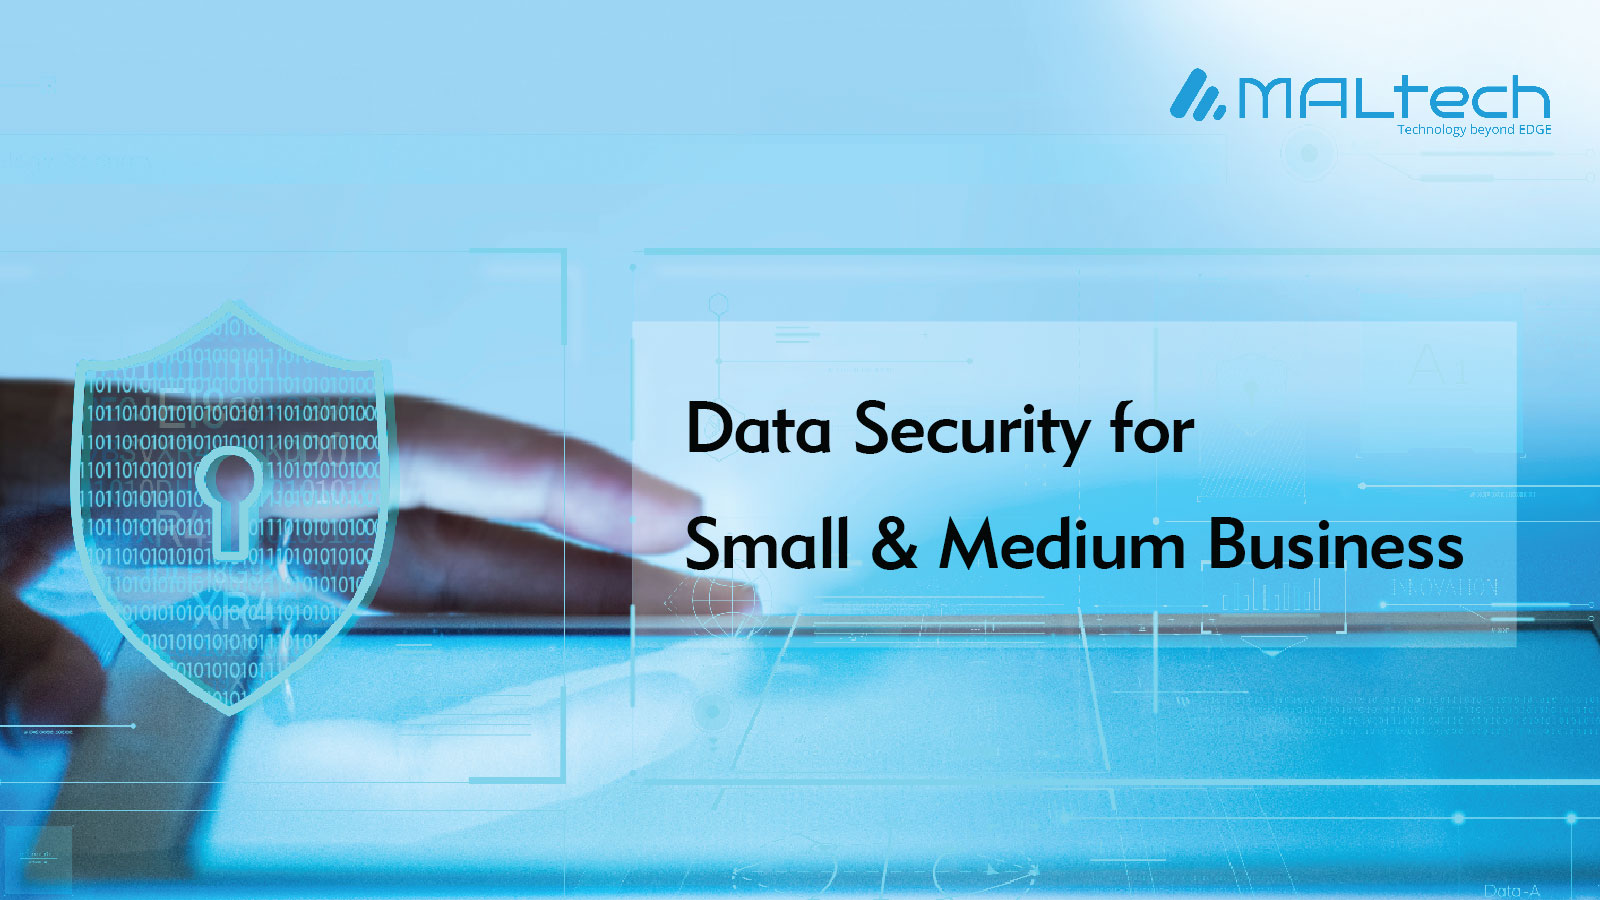 Data Security for Small & Medium Business